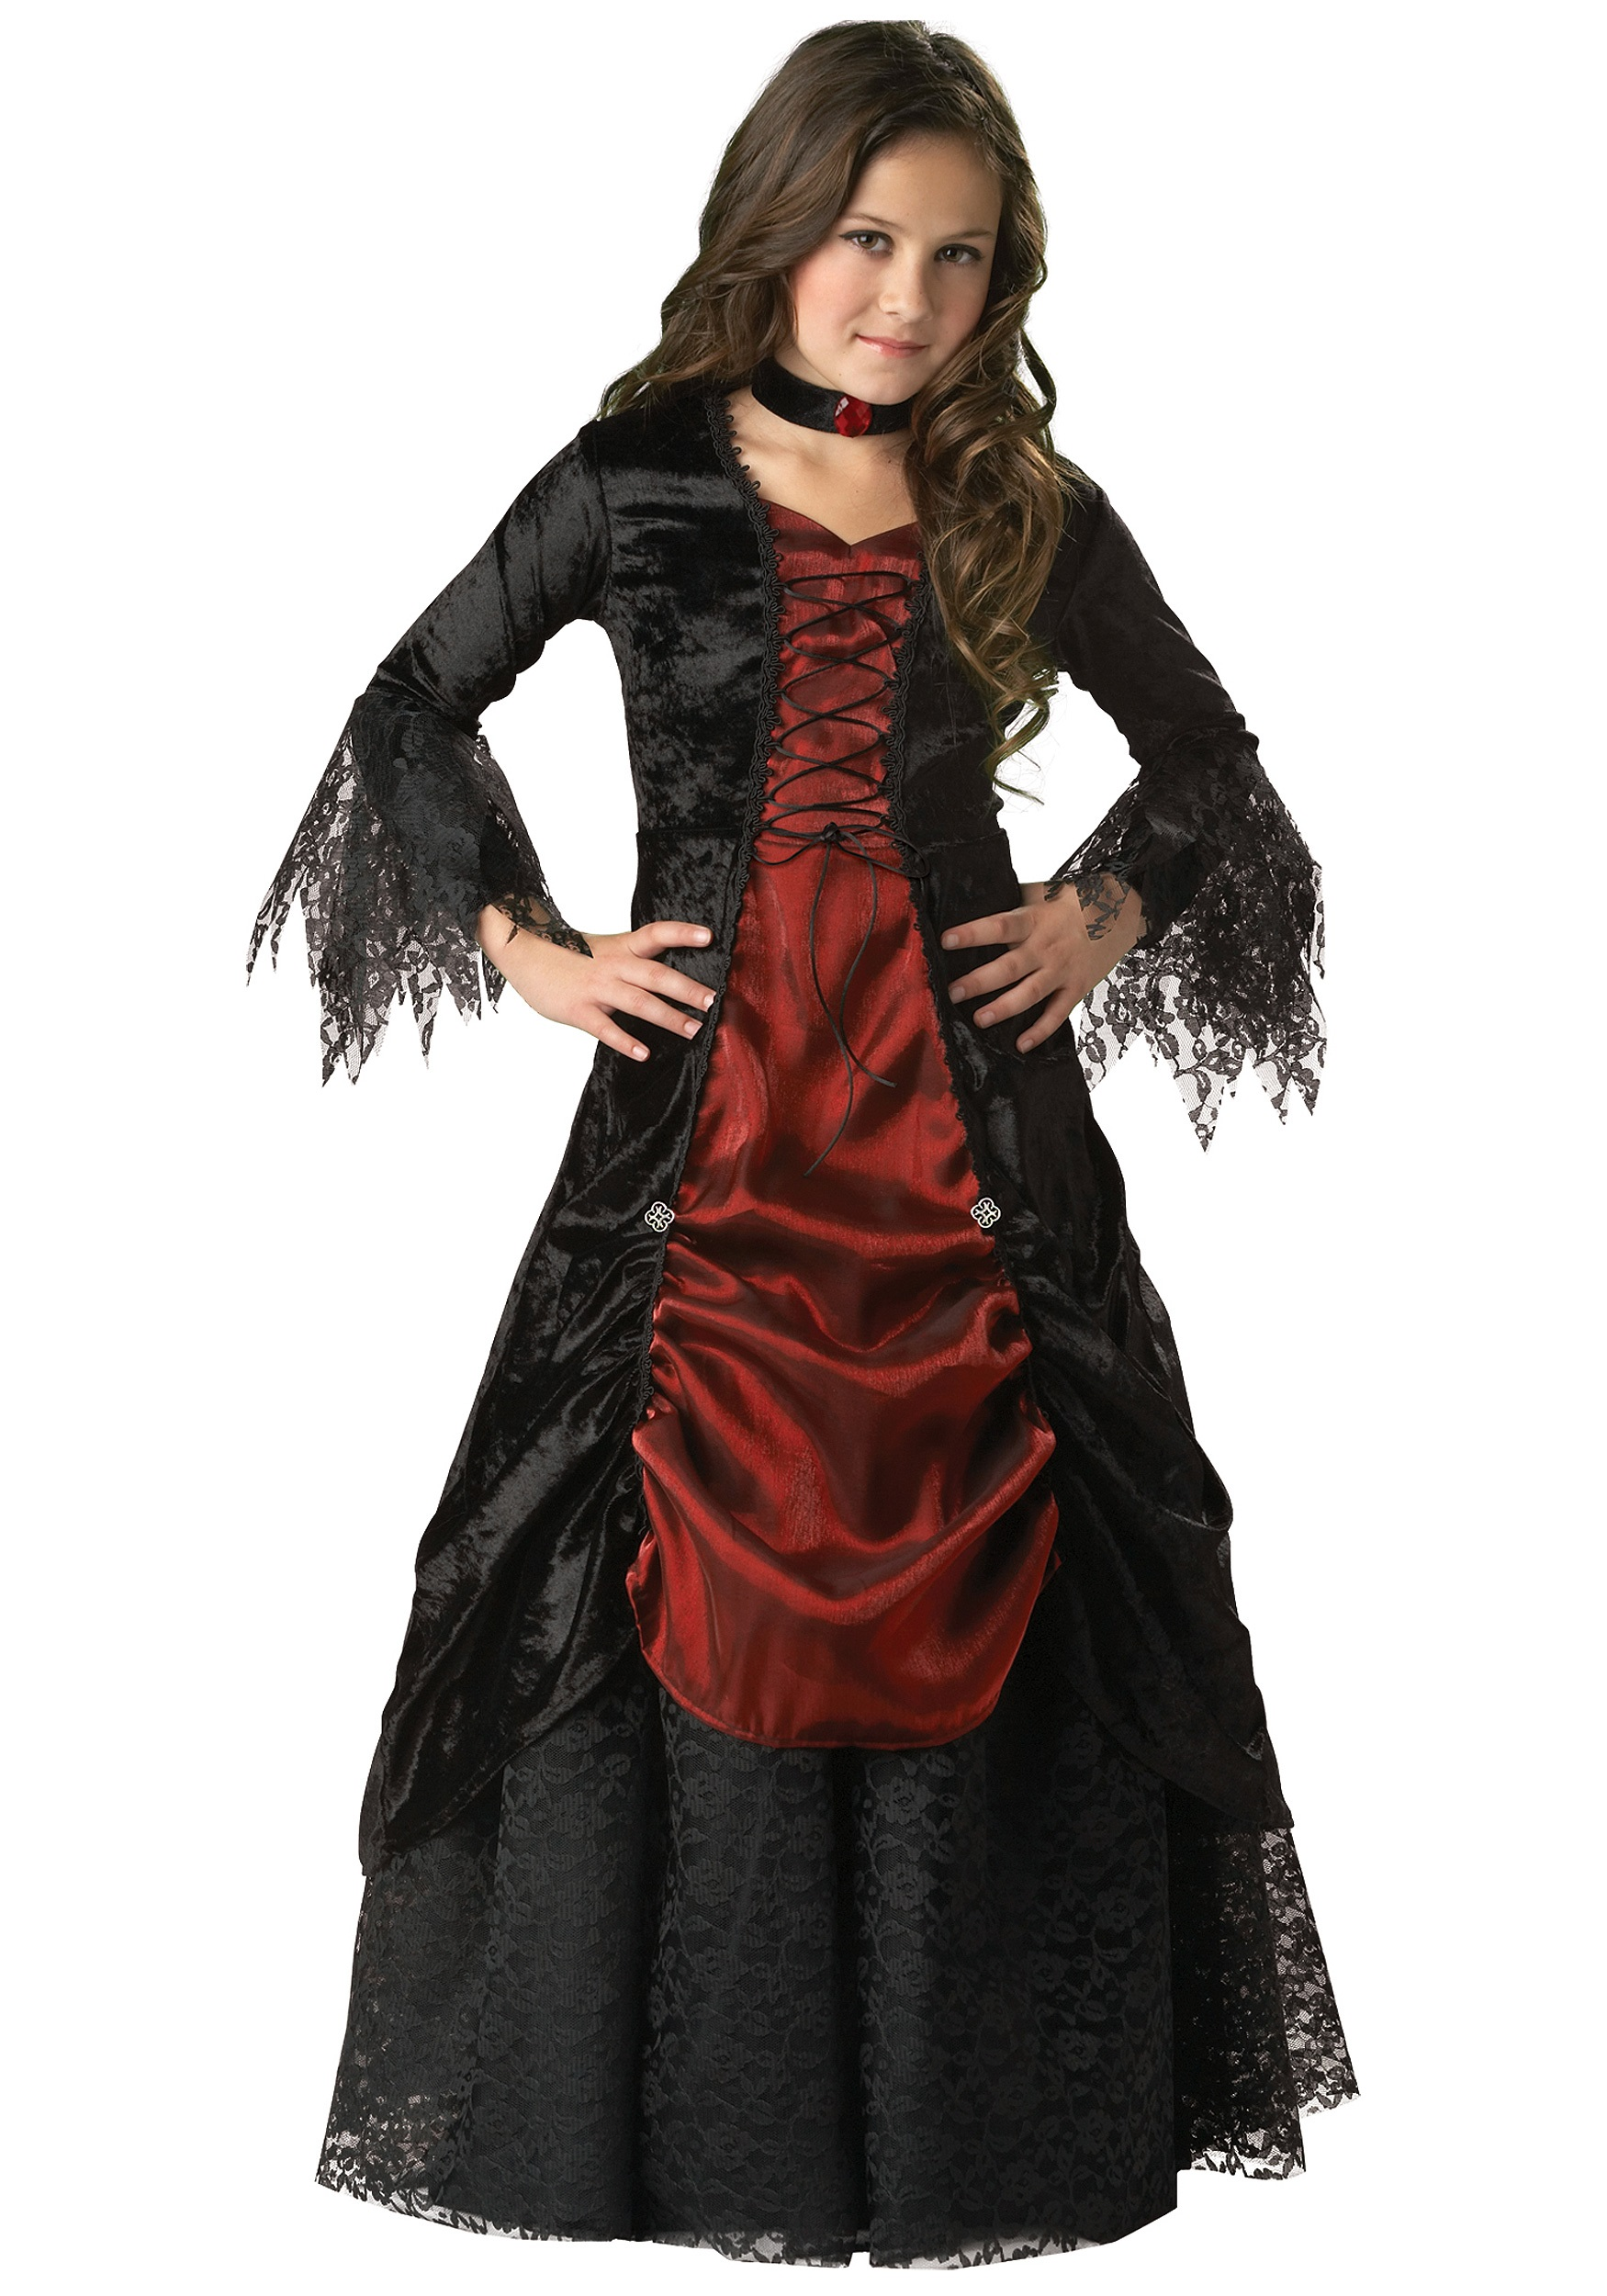 girls goth vampire costume girls traditional vampira. Black Bedroom Furniture Sets. Home Design Ideas